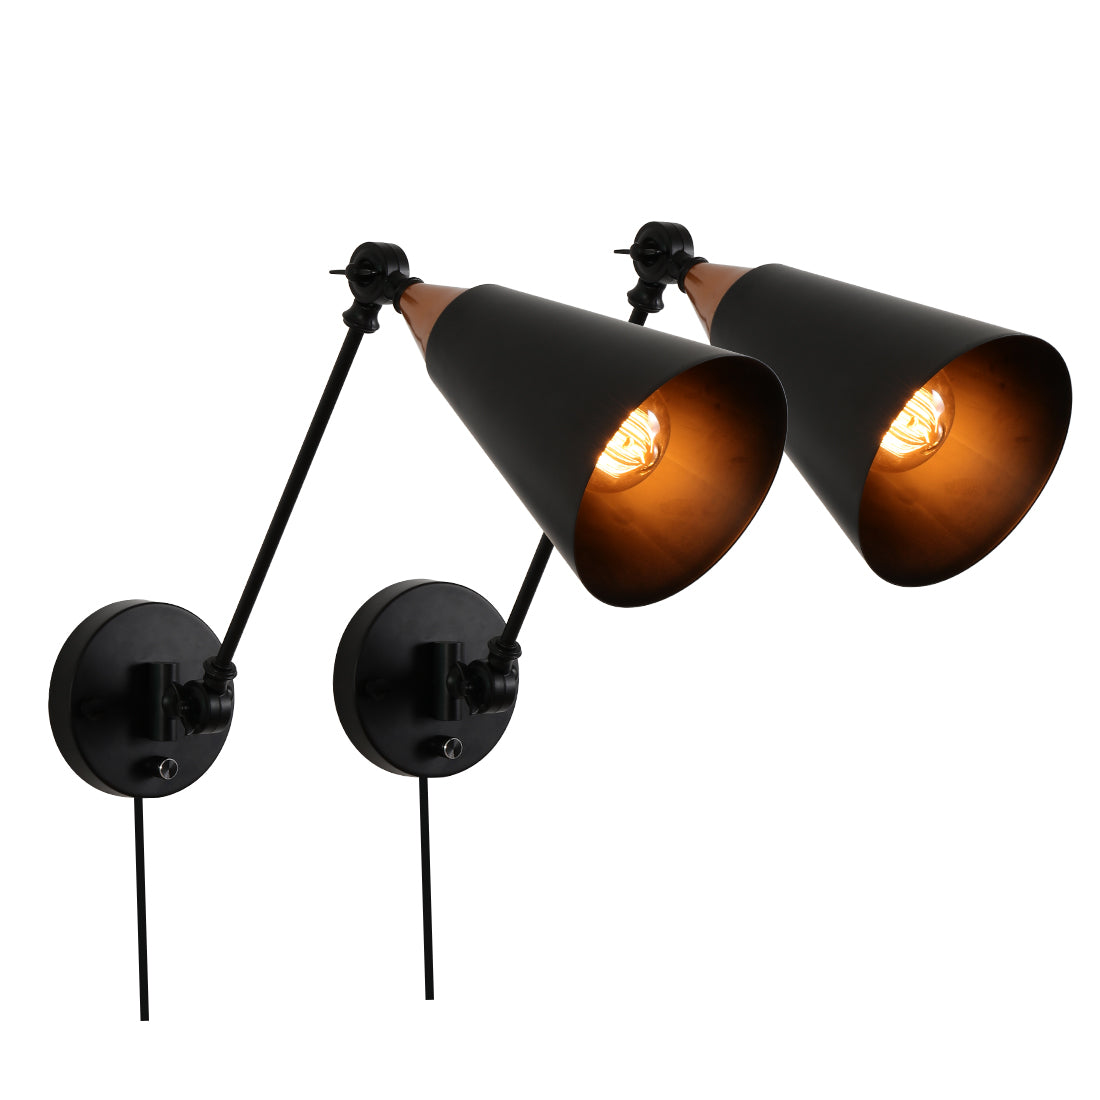 Adjustable black swing arm wall light fixture,2 pack plug in wall sconce